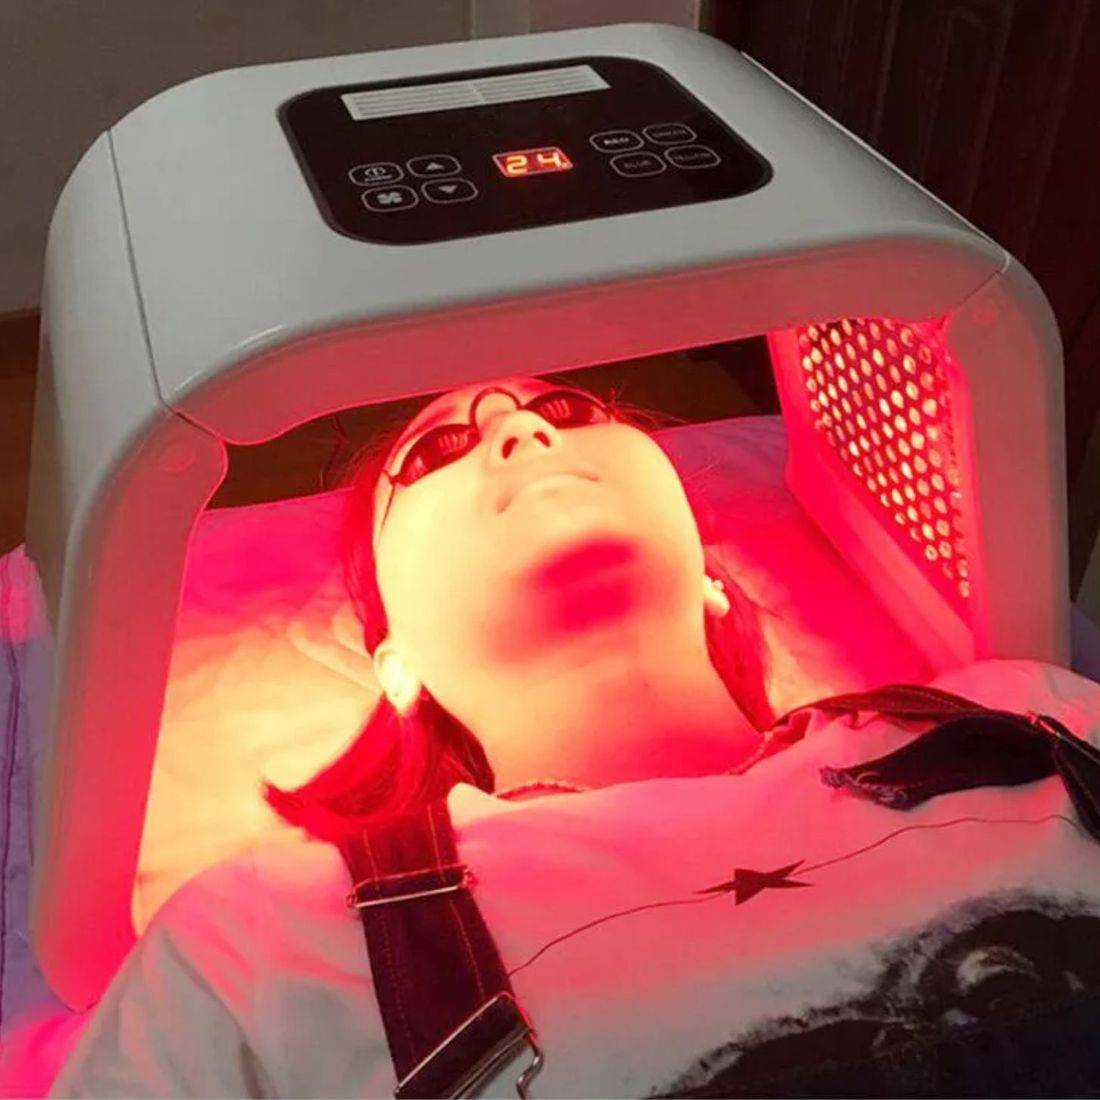 Red LED light therapy, anti-ageing, phototherapy, creativity beauty solutions Reading